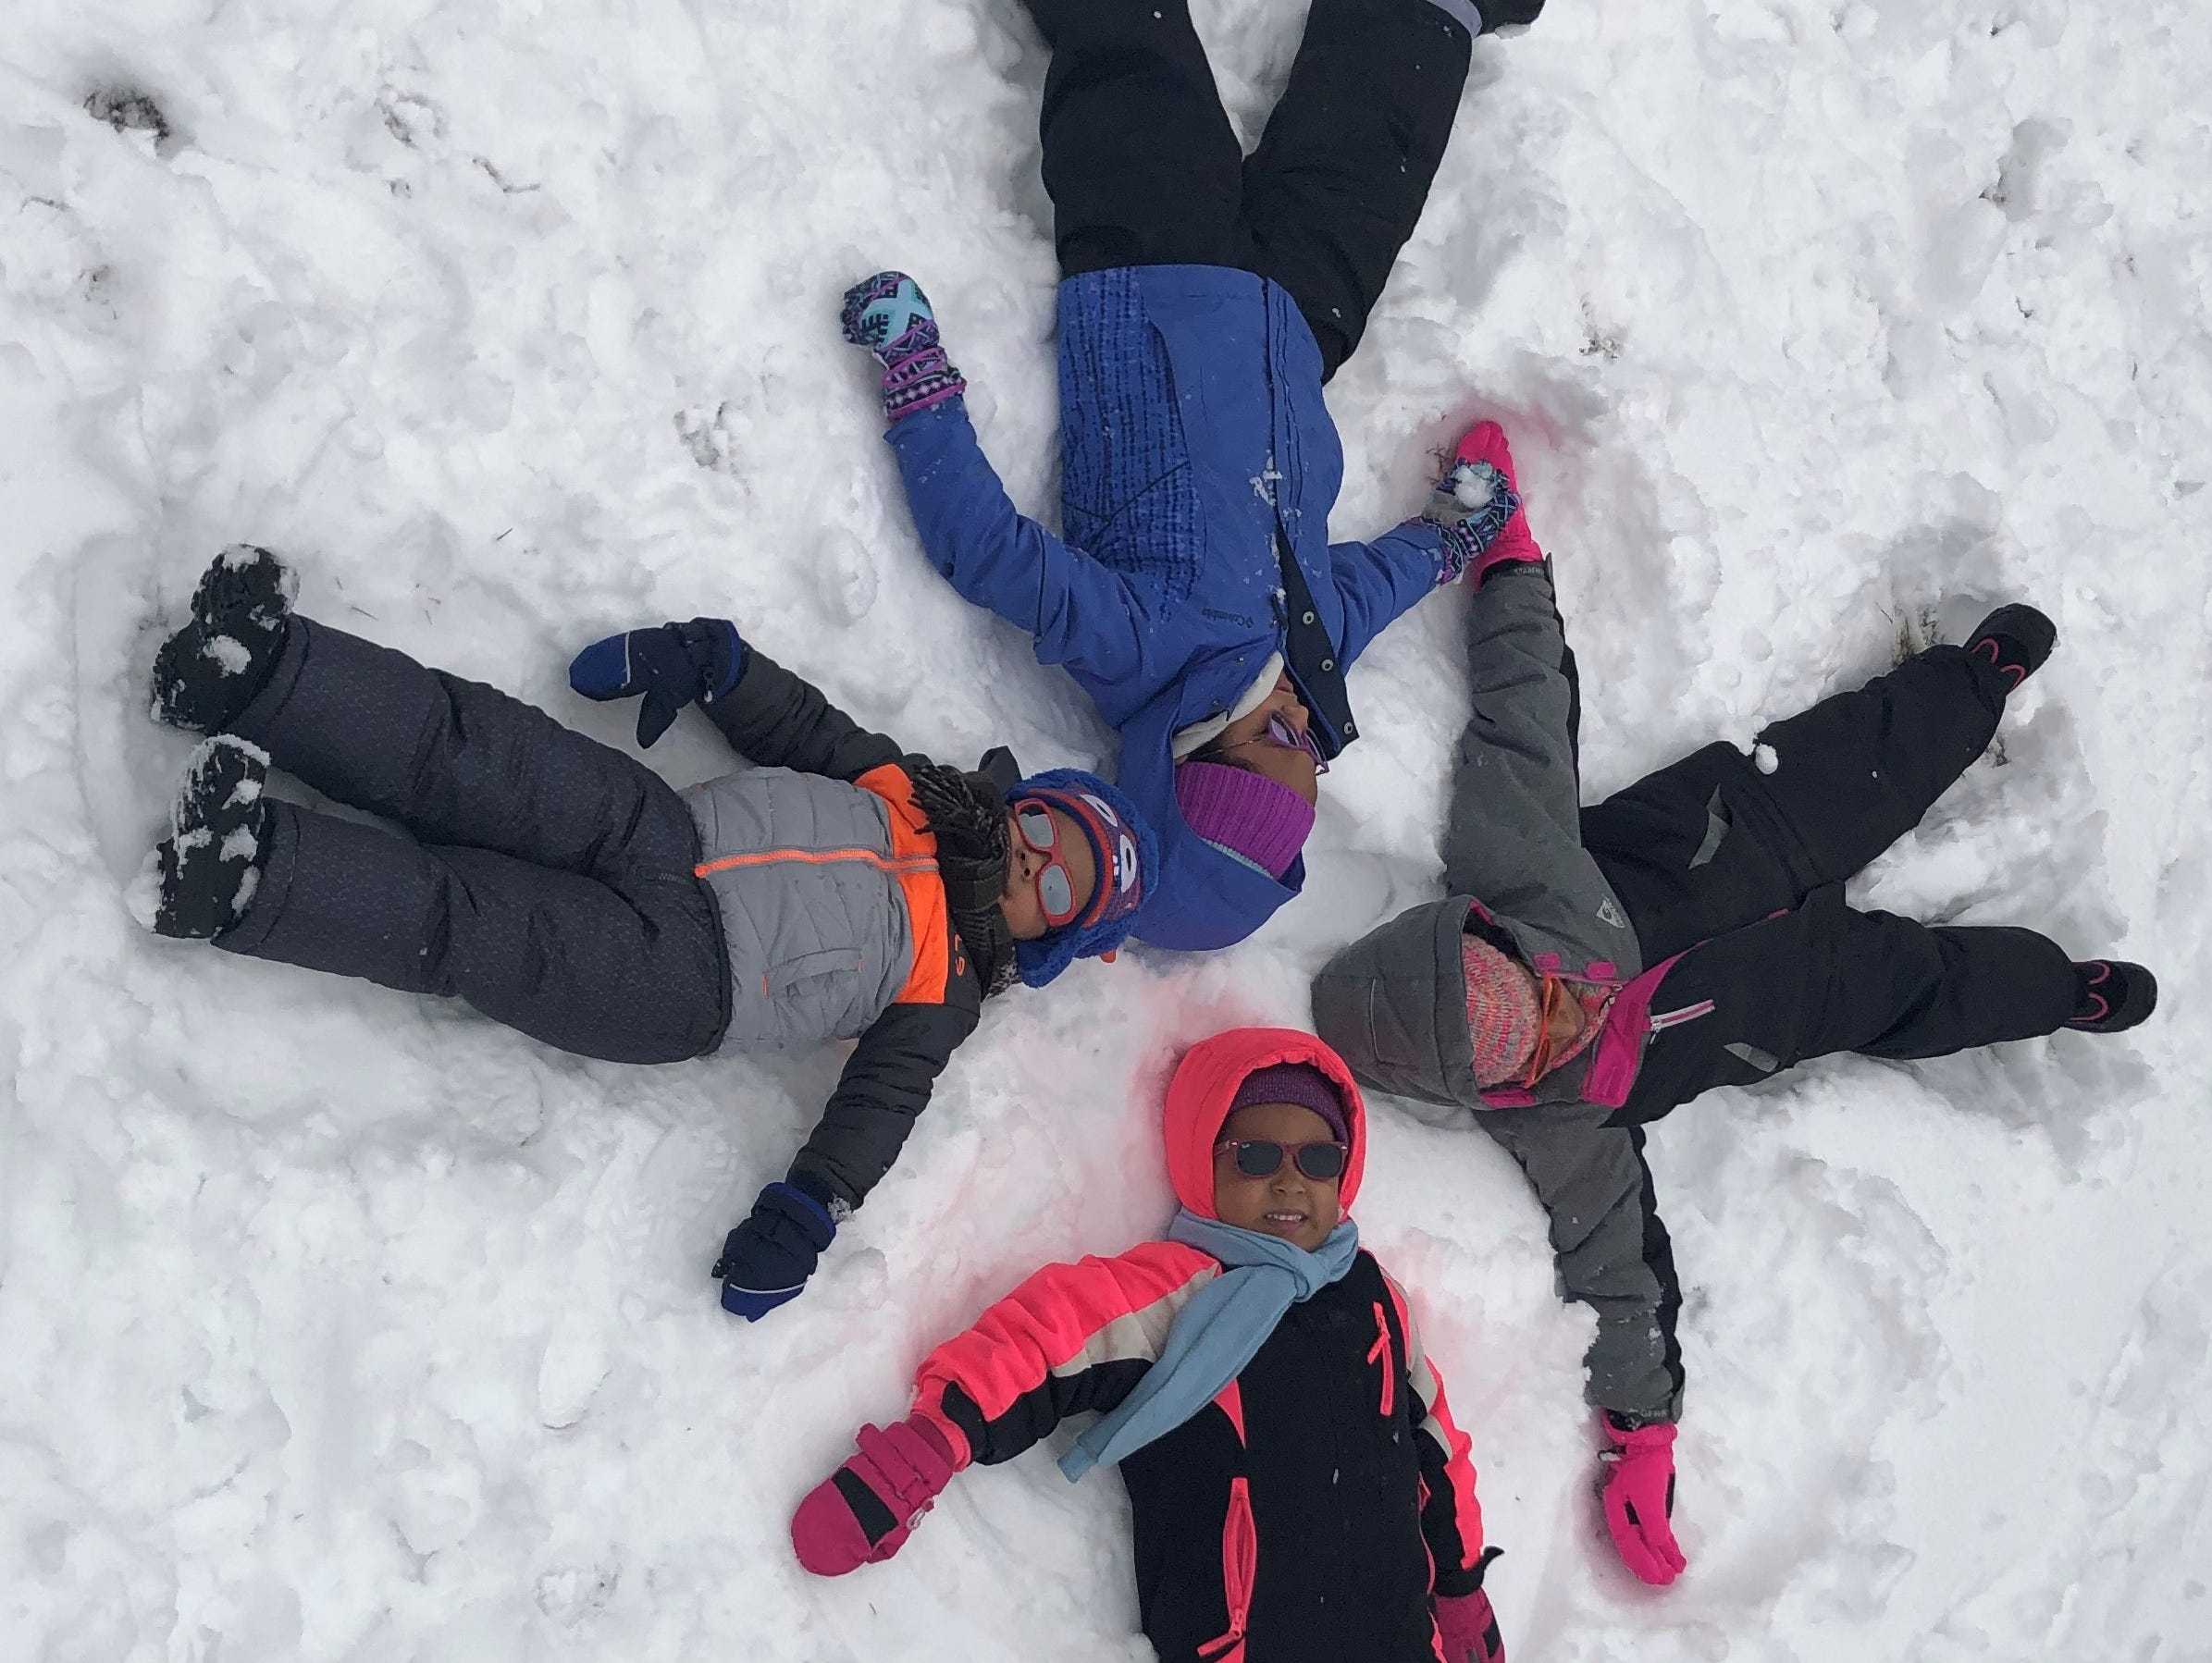 Nutley's Abutaah family - Ameera, 6, Sophia, 8, Lydia, 4, and Omar, 2, make angels in the snow on Monday.